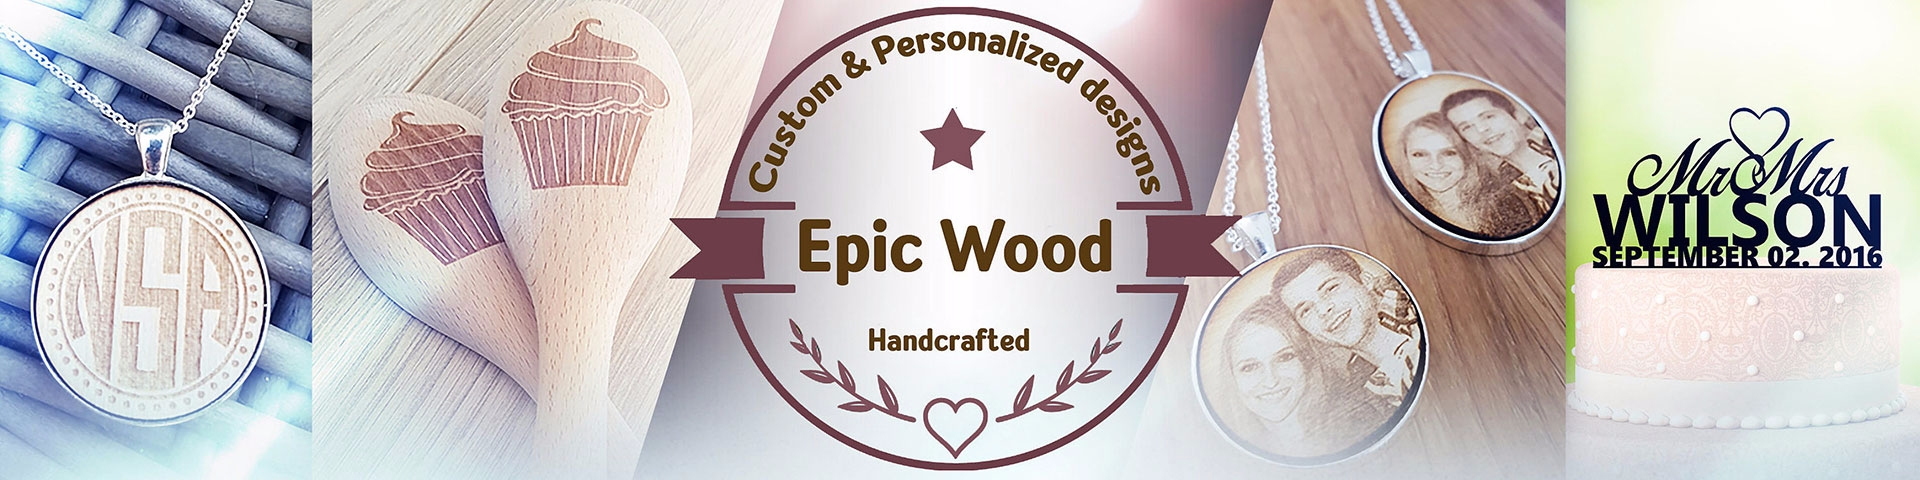 Epic Wood (@epicwood) Cover Image